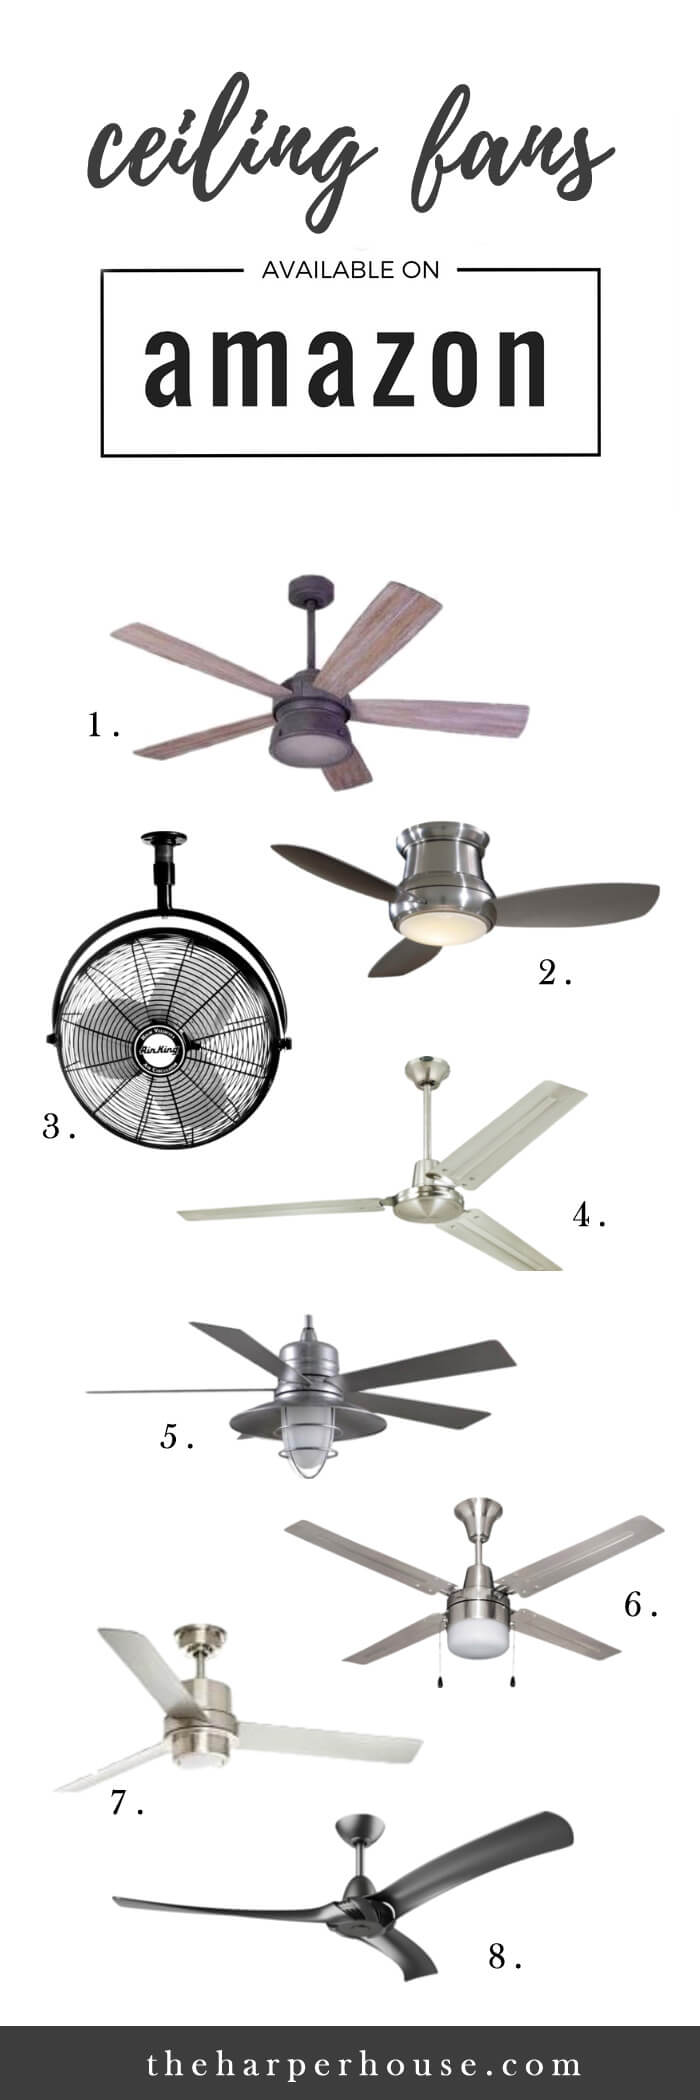 Give your room an instant face lift with these great looking farmhouse ceiling fans available on Amazon! www.theharperhouse.com